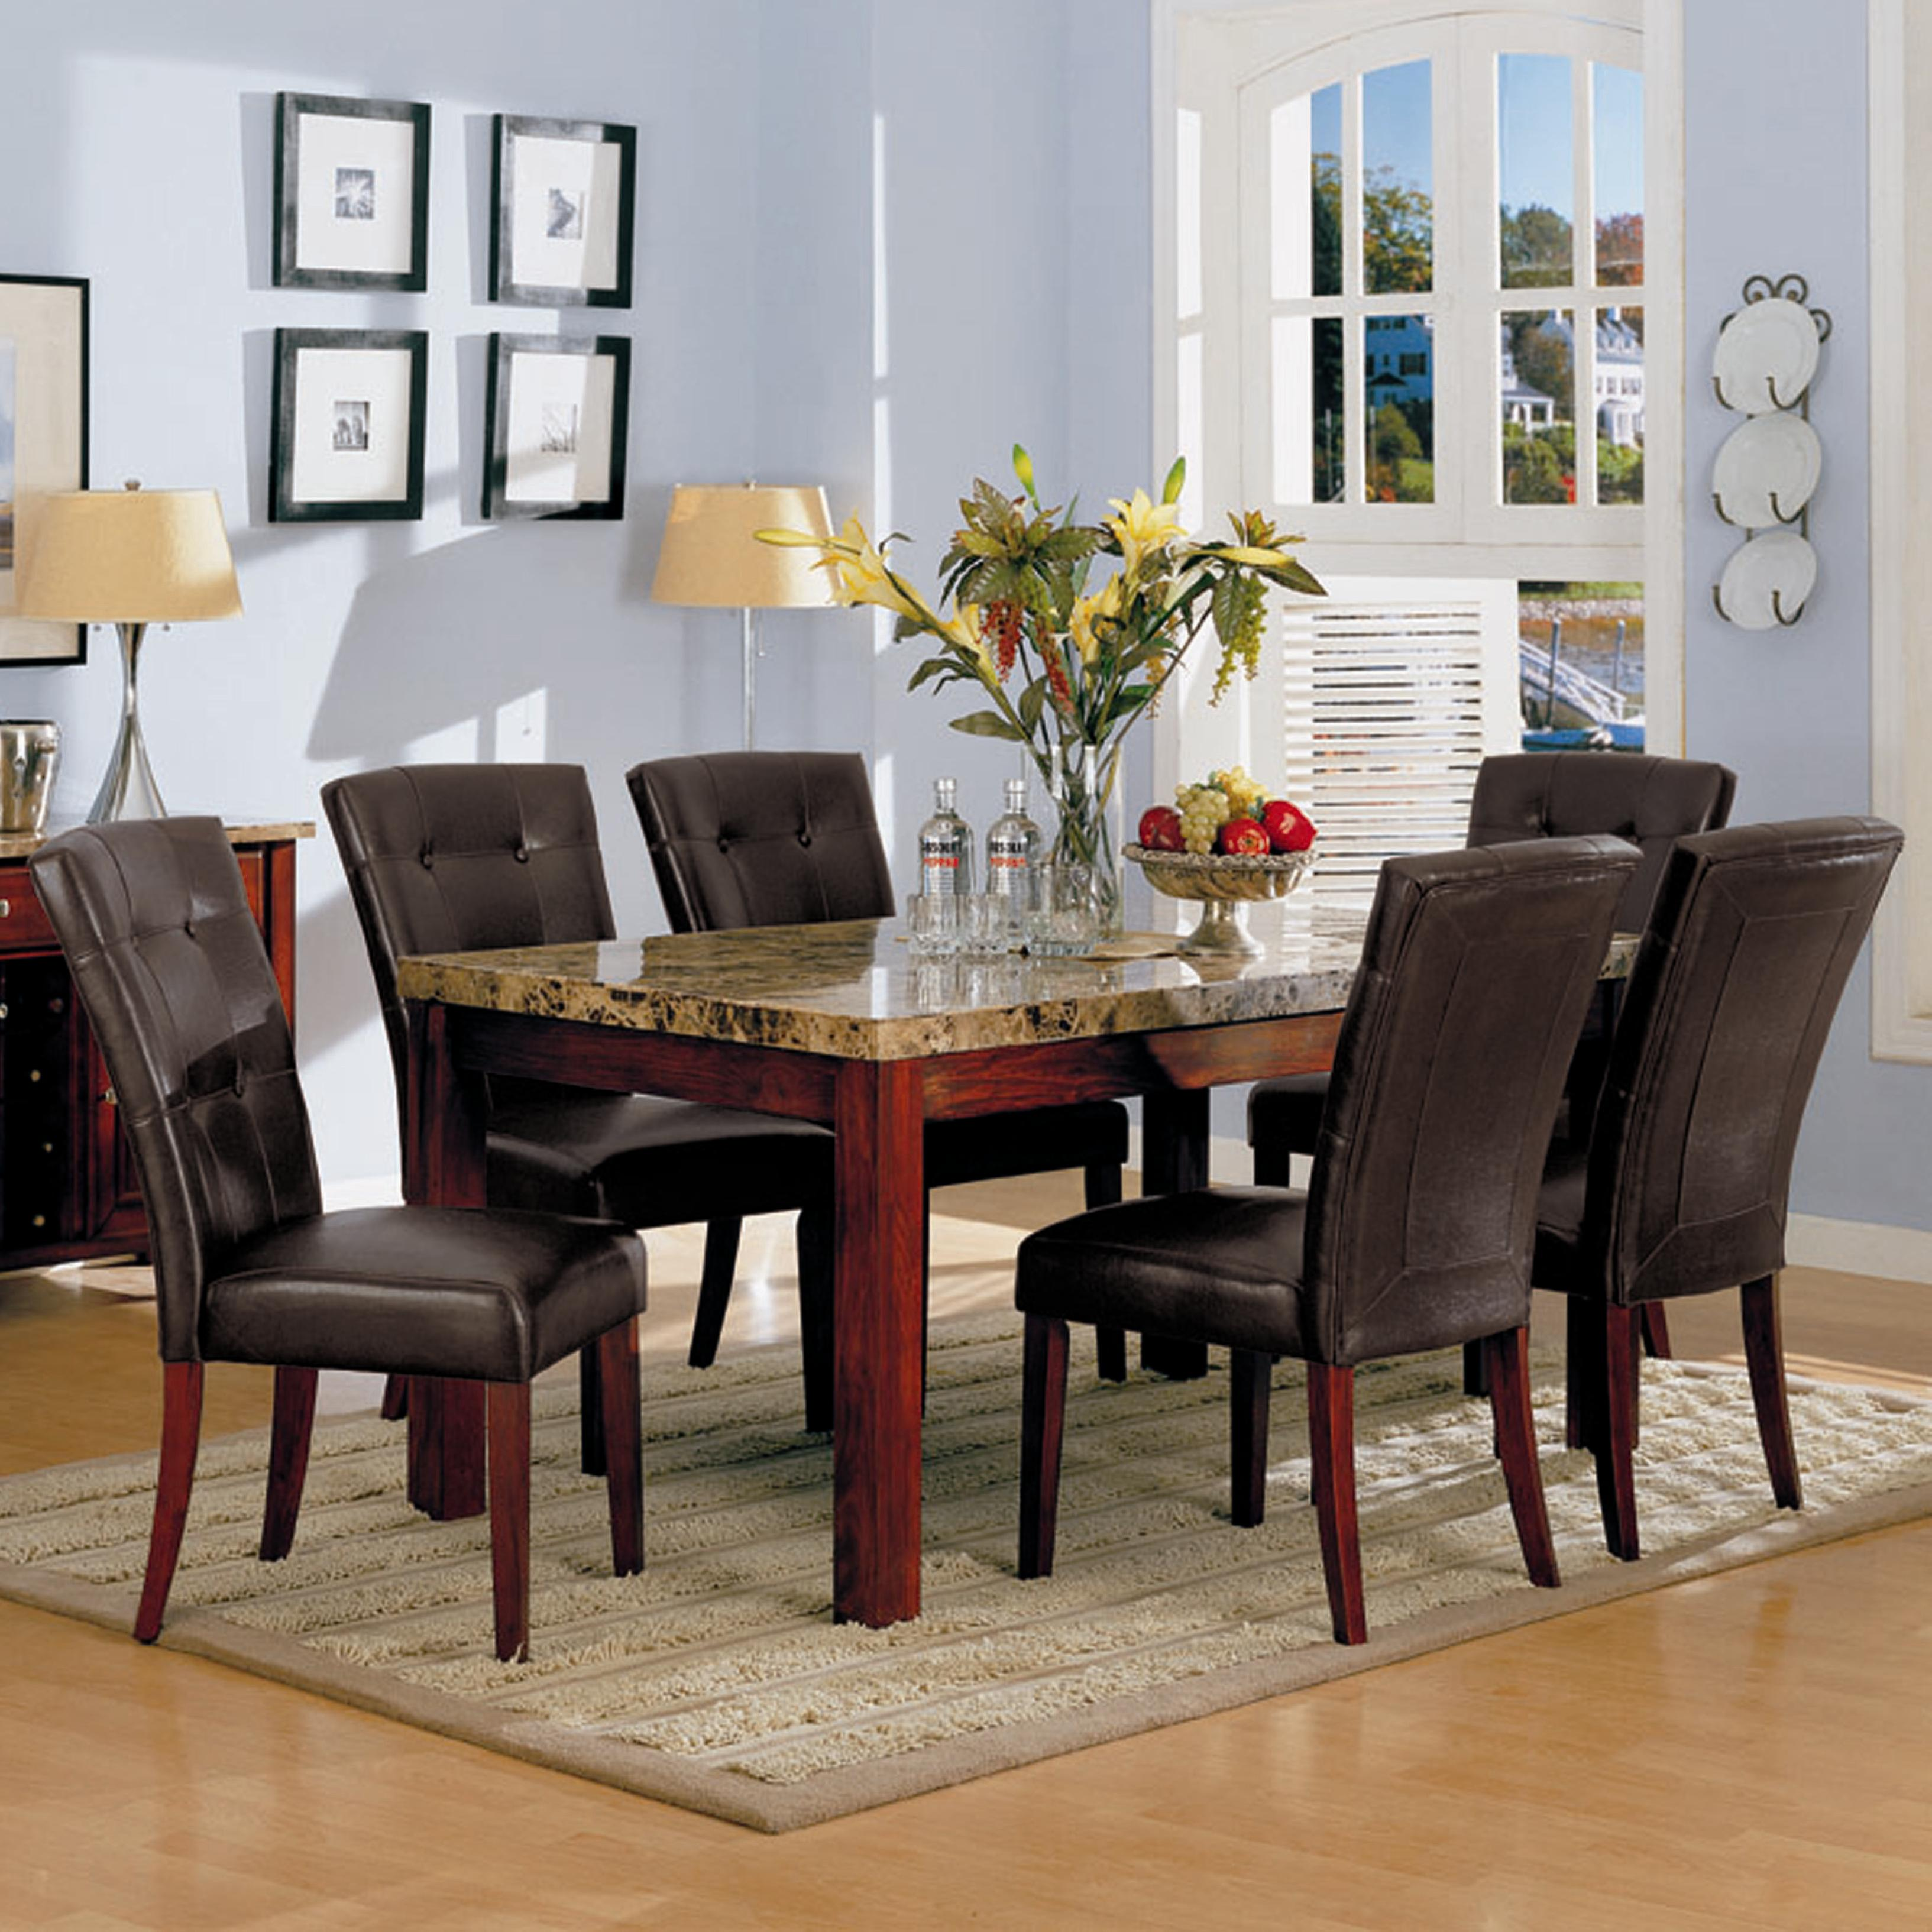 7045 Bologna 7 Piece Dining Set by Acme Furniture at Carolina Direct